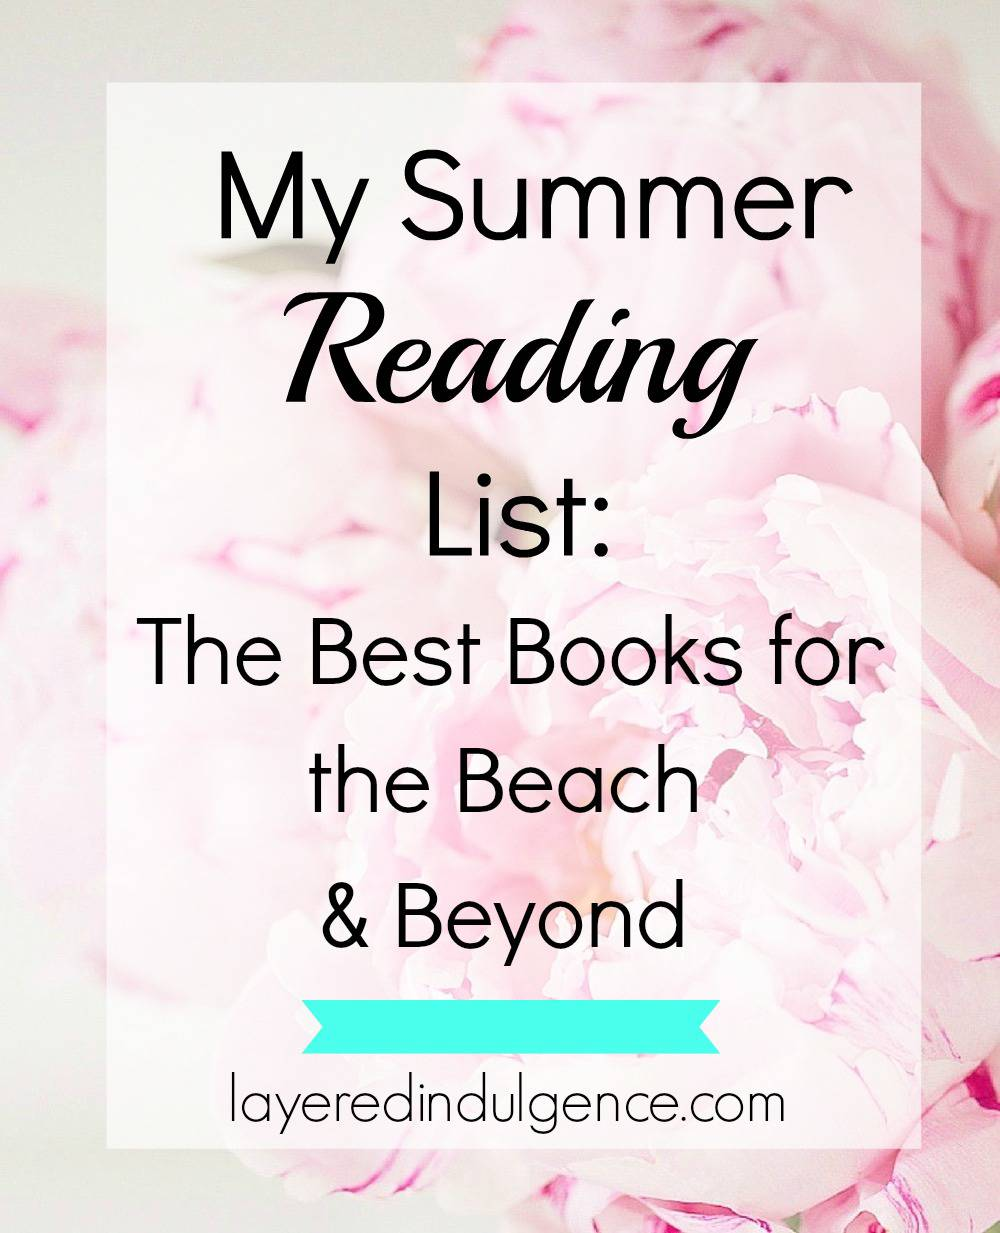 Looking for a must-read list of books for summer 2016? I've got you covered! From Cynthia D'Aprix Sweeny's The Nest, to Mindy Kaling's Why Not Me, and much more, this is the ultimate summer reading list! Click through now to check it out or save this pin for later.